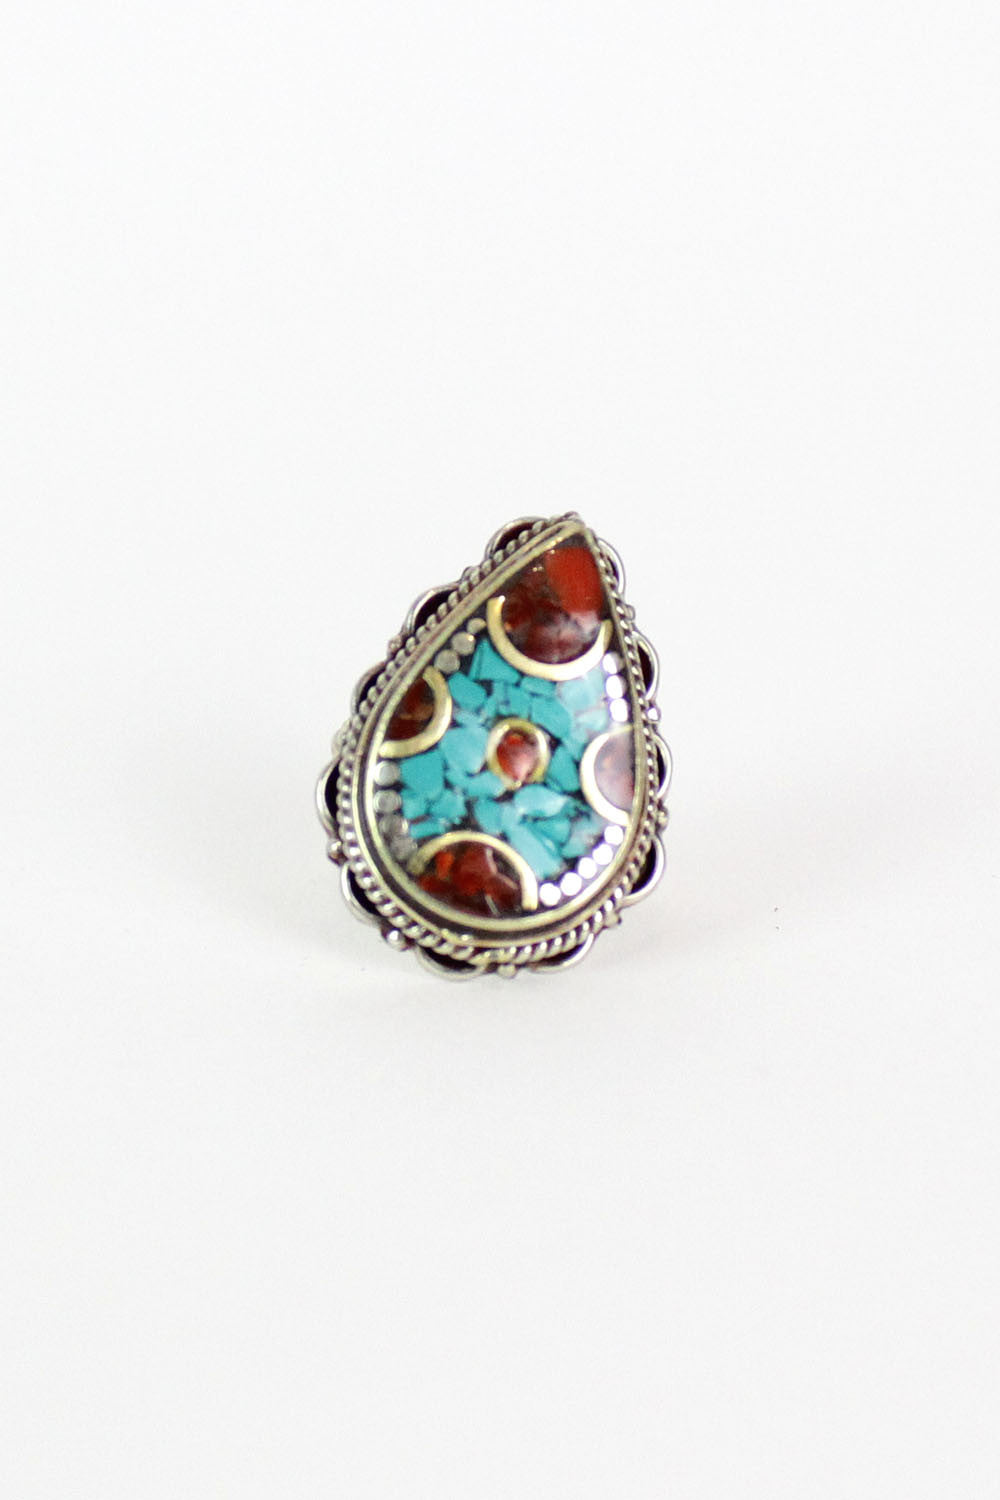 Teardrop Turquoise Chip Ring